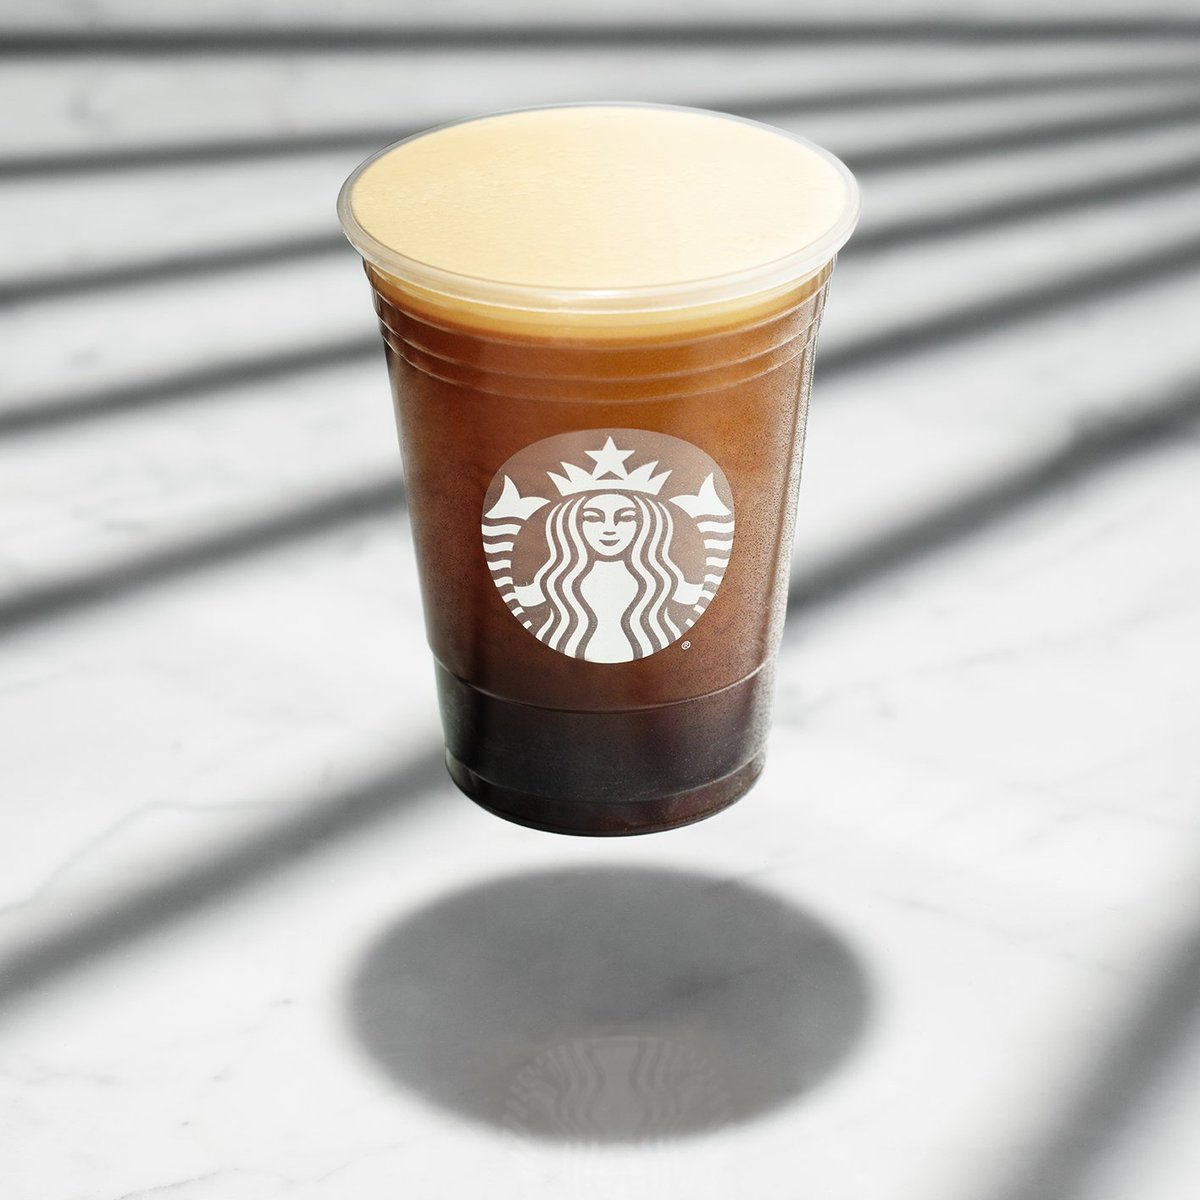 Starbucks Coffee On Twitter In The World Of Whoa The Laws